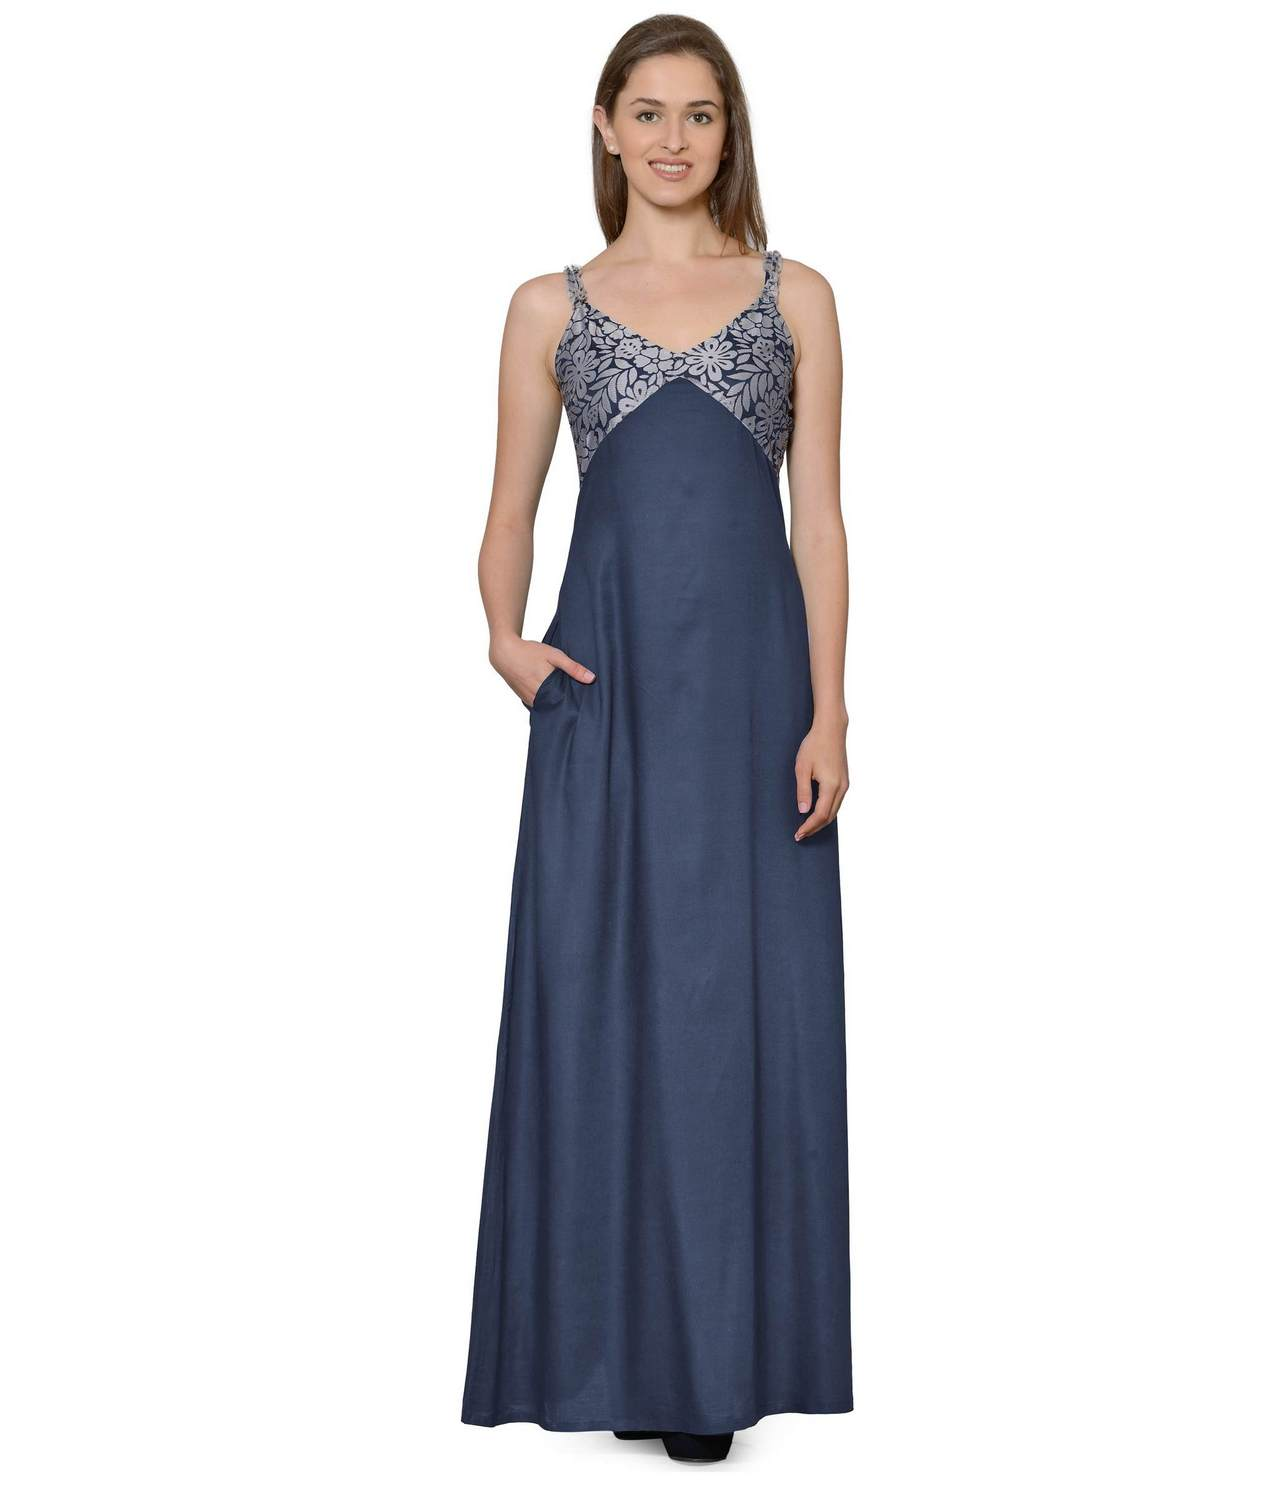 Lace Embellished Empire Maxi Gown Dress in Grey